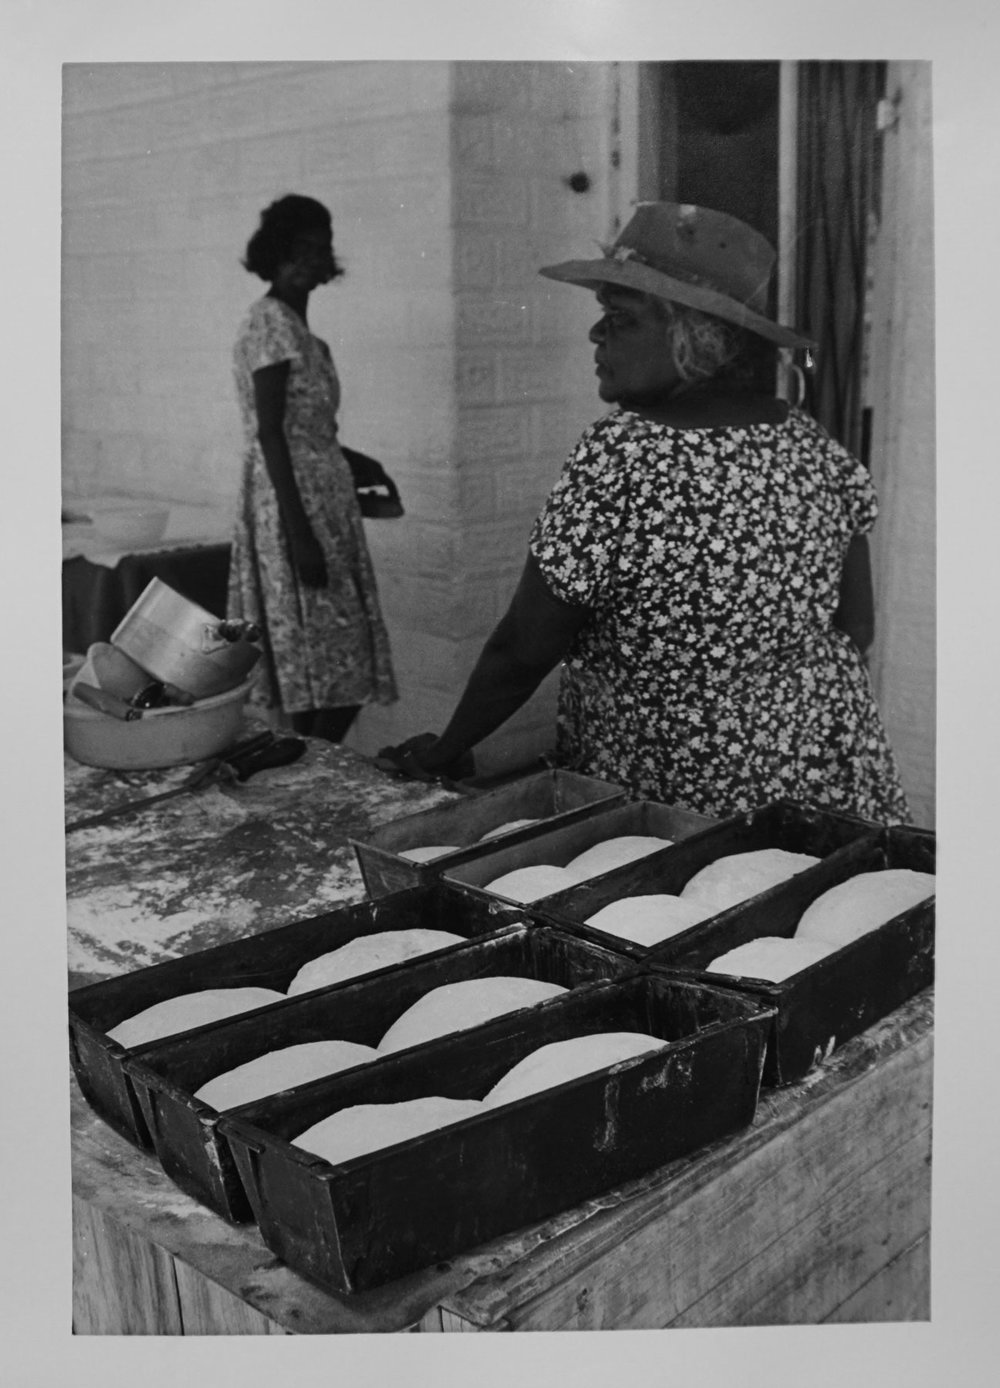 30. Richard Woldendorp, 'Baking Bread, Brooking Springs Station, Kimberley WA', BW69, taken and printed in 1965, Vintage Print